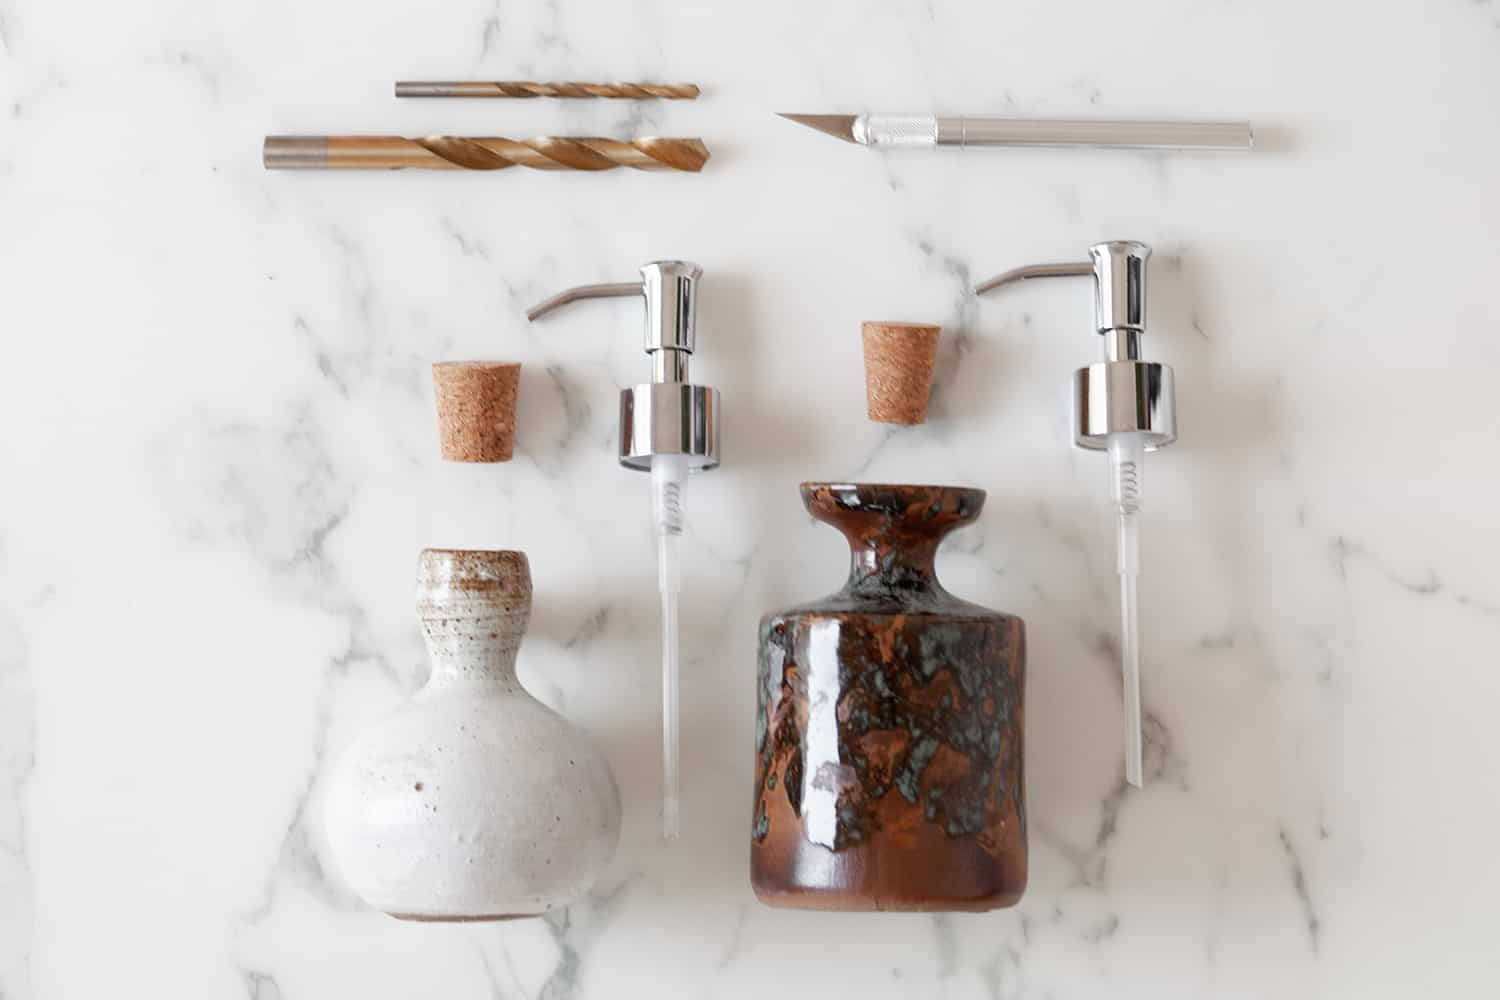 Turn a Vase into a Soap Dispenser